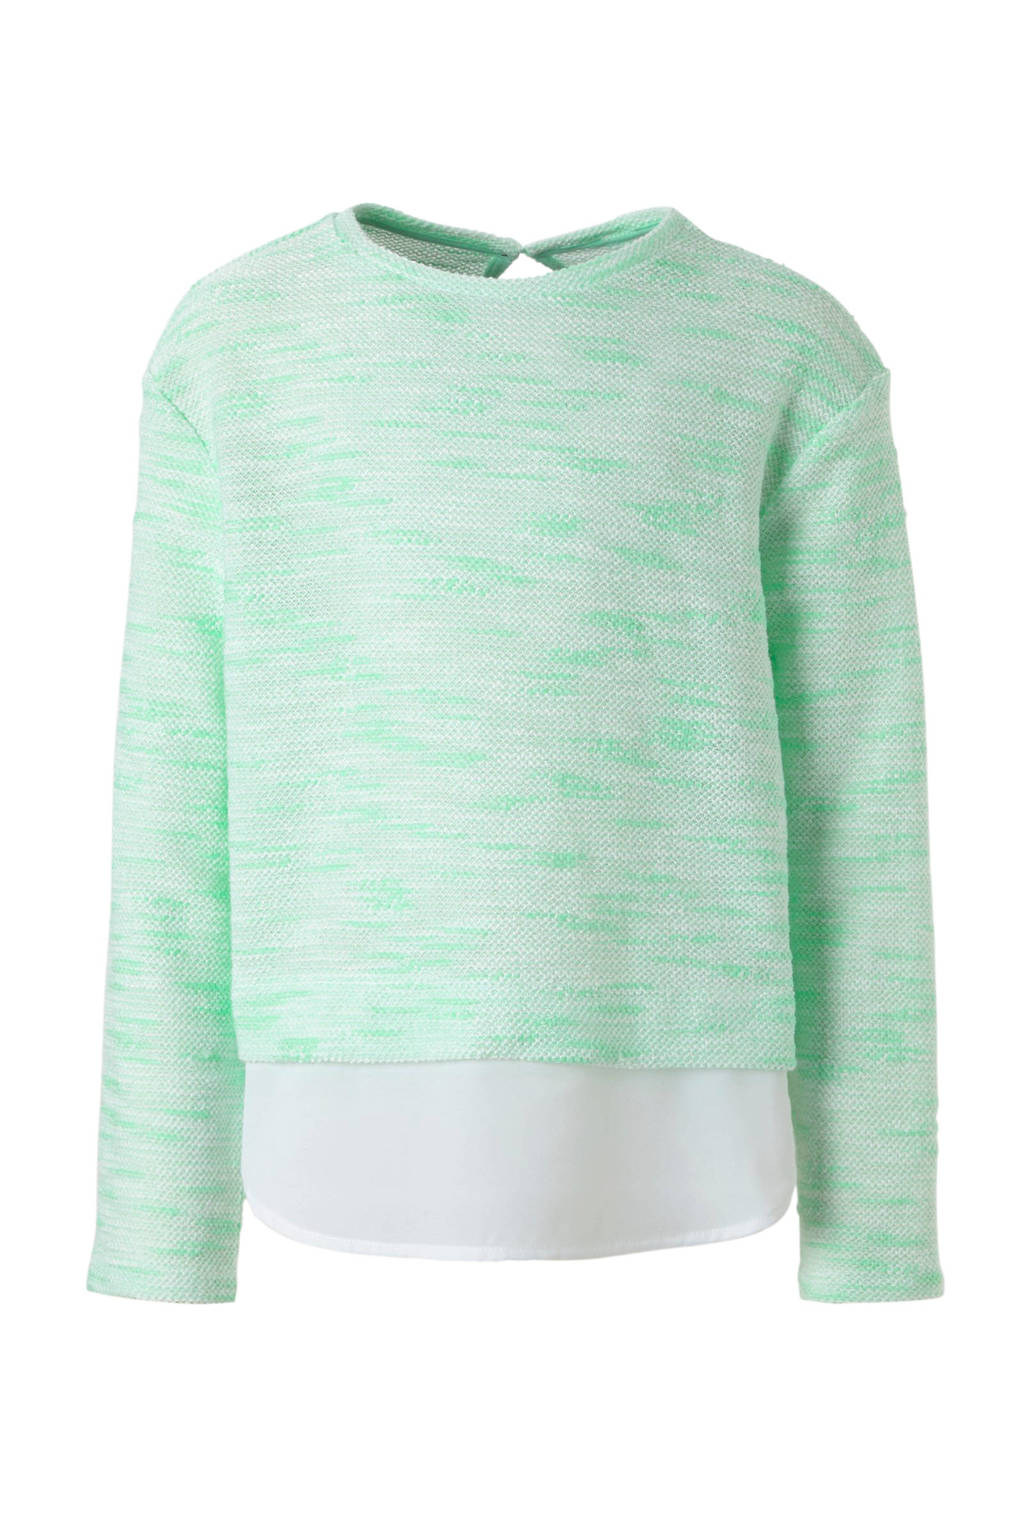 C&A Here & There trui met blousedetail mint, Mintgroen